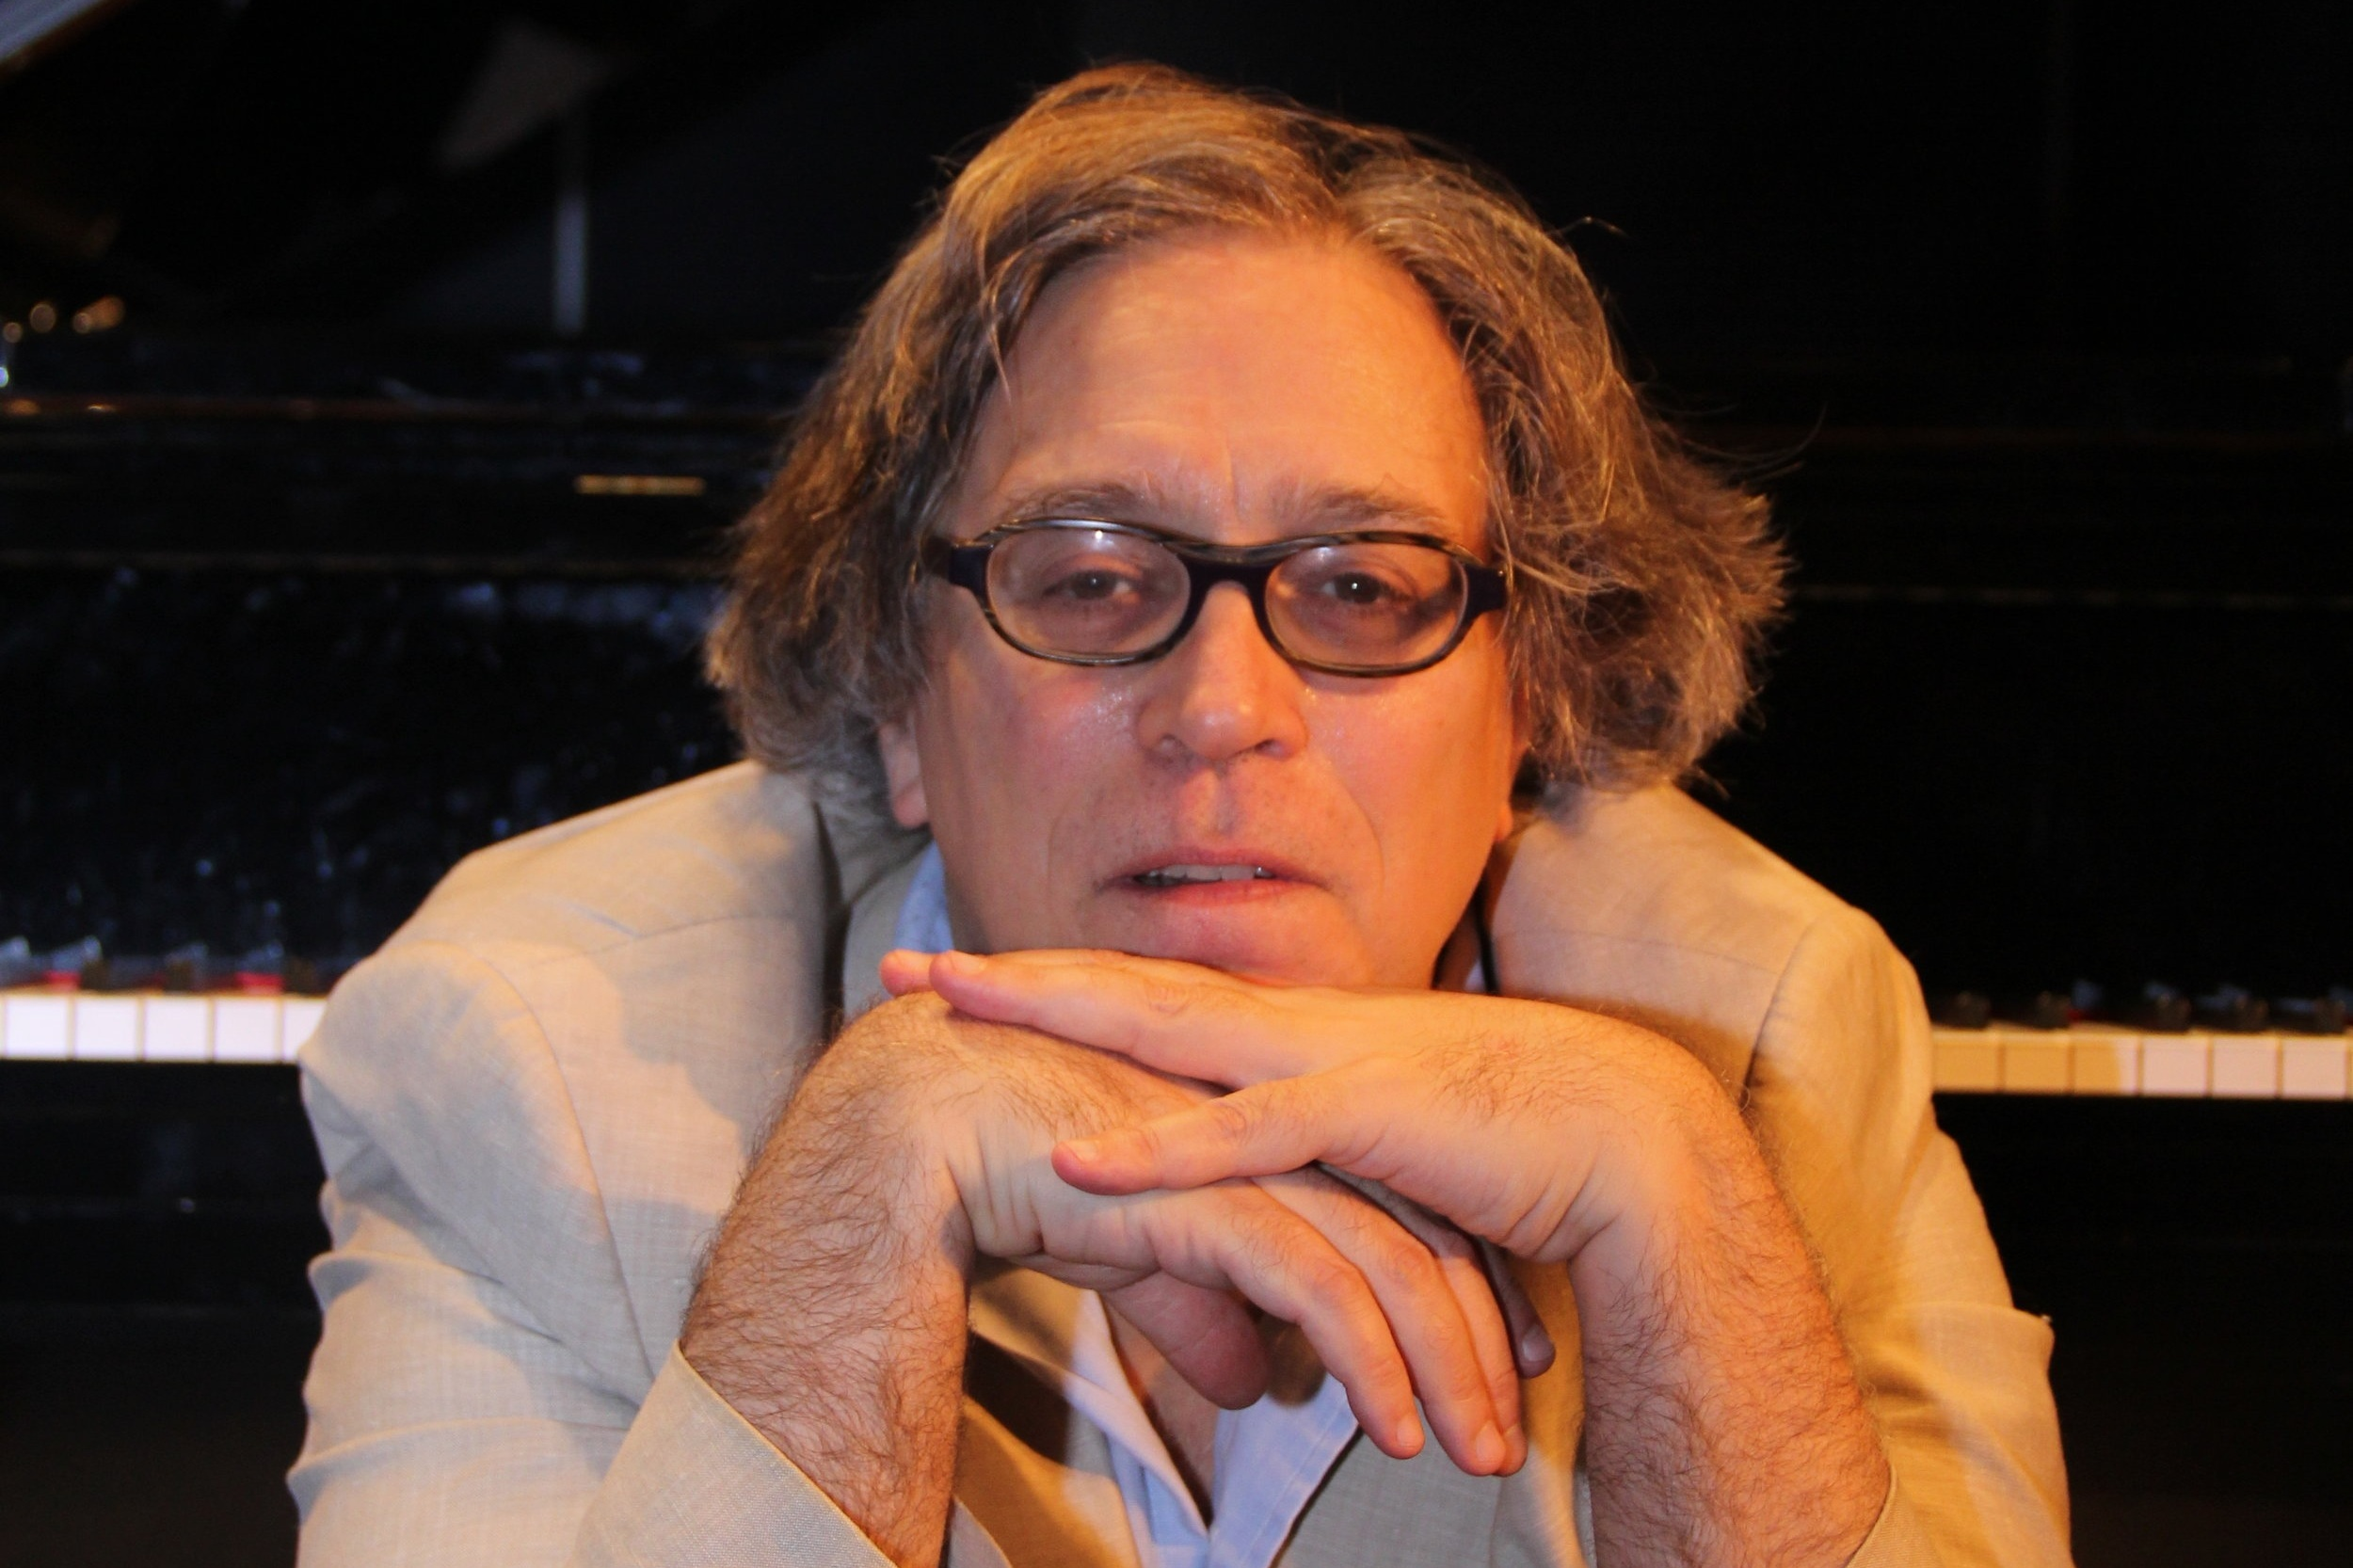 Jed Distler - Composer, Gramophone magazine reviewer, Radio host at Between the Keys, Artistic director, ComposersCollaborative